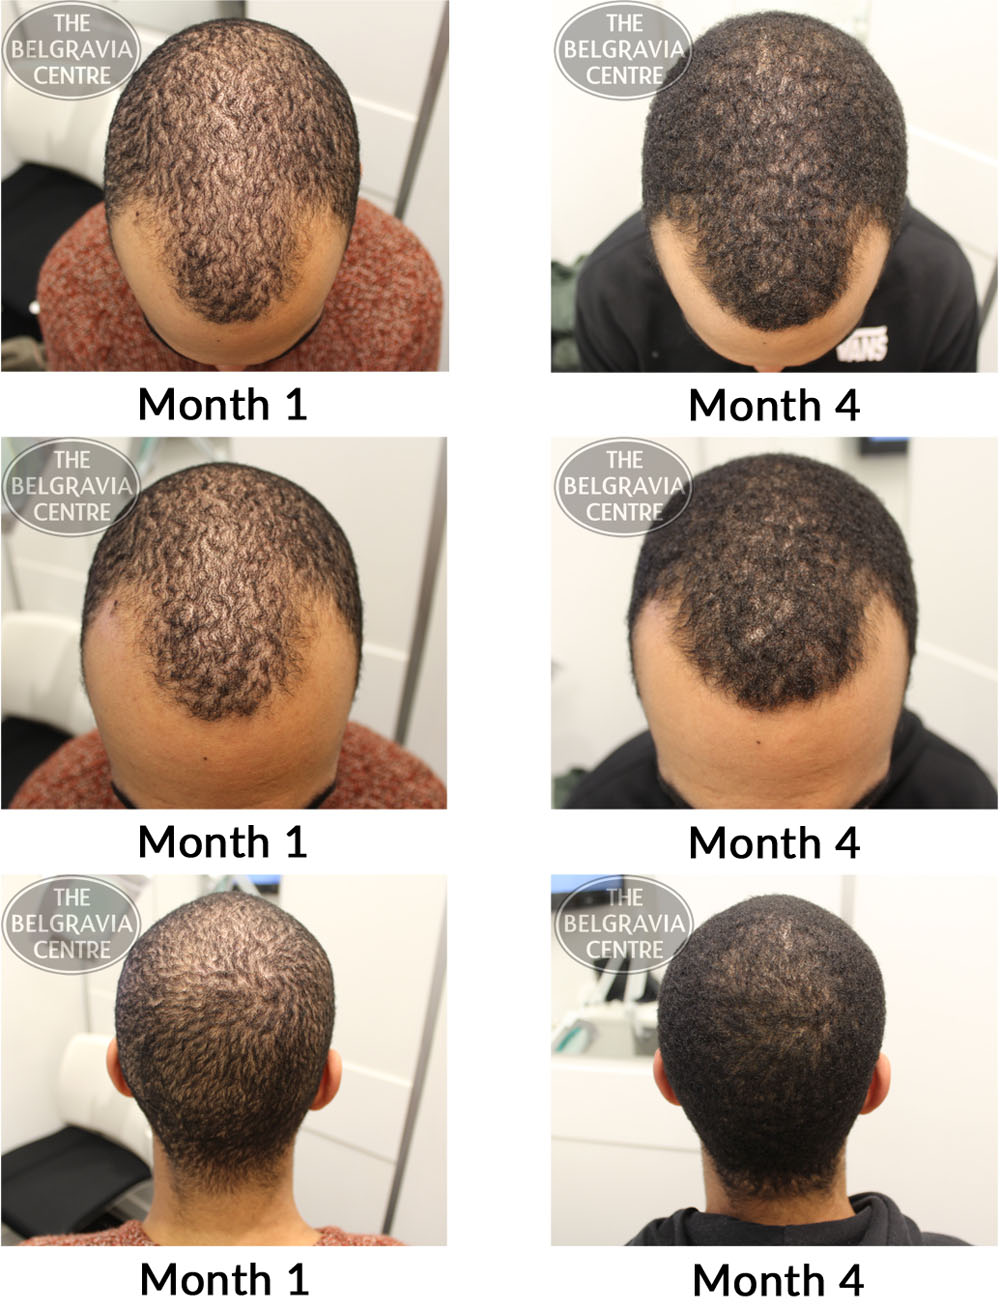 male pattern hair loss the belgravia centre 15 05 17